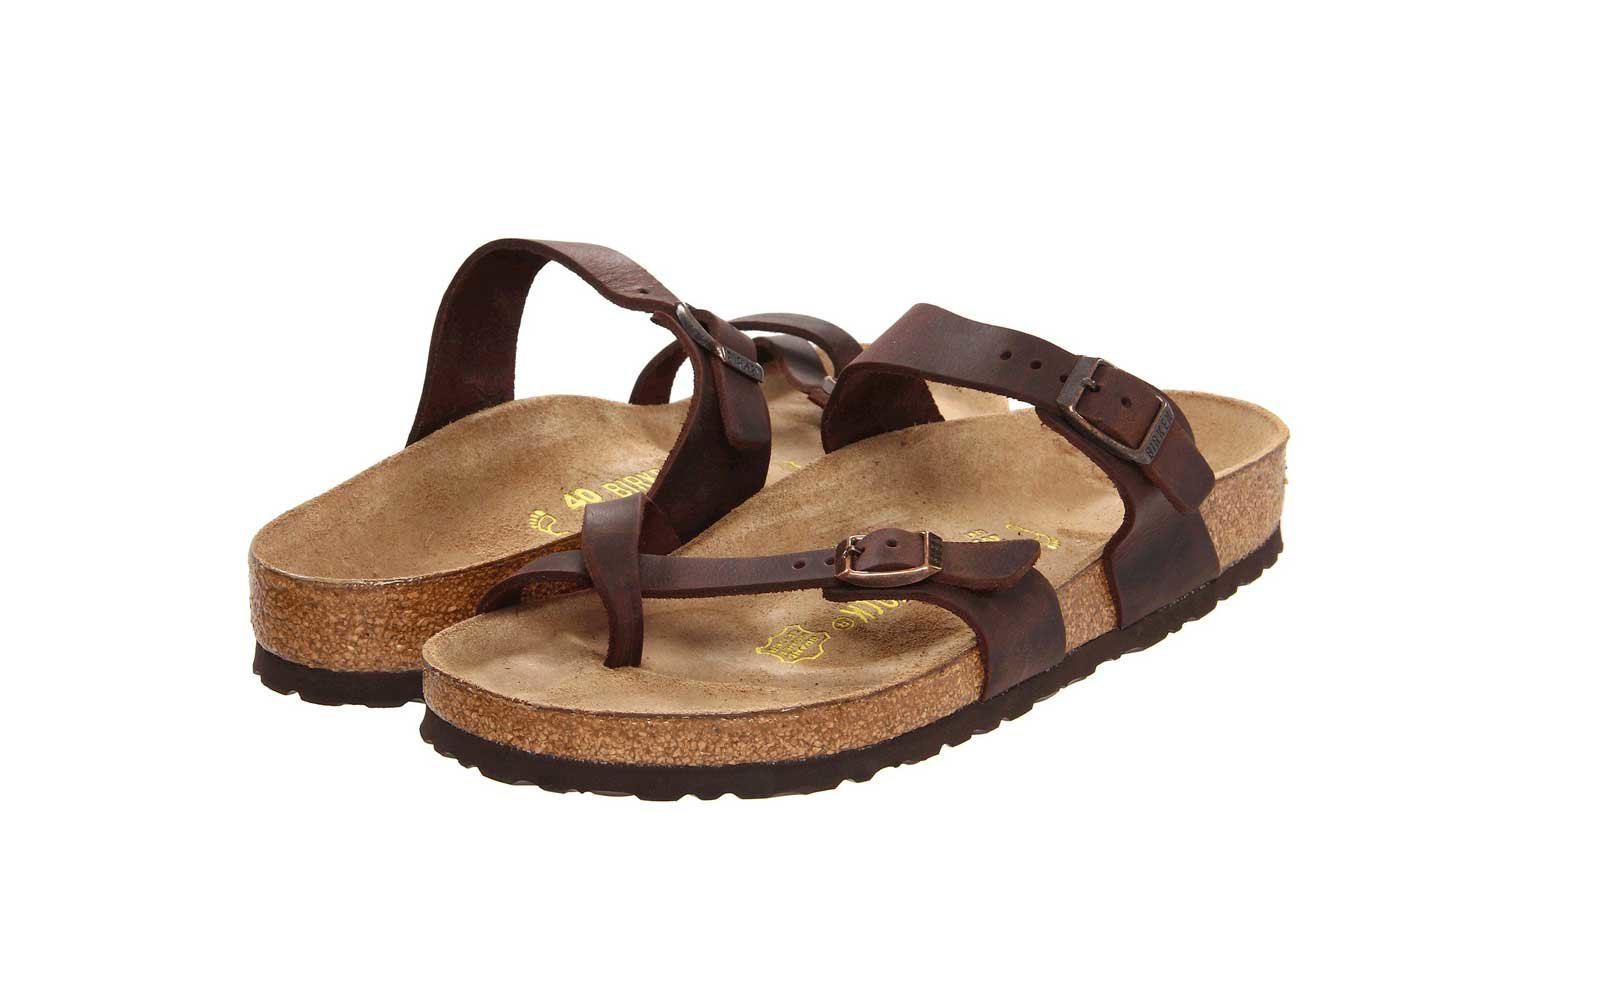 af73f3dc4b9552 The Most Comfortable Walking Sandals for Women